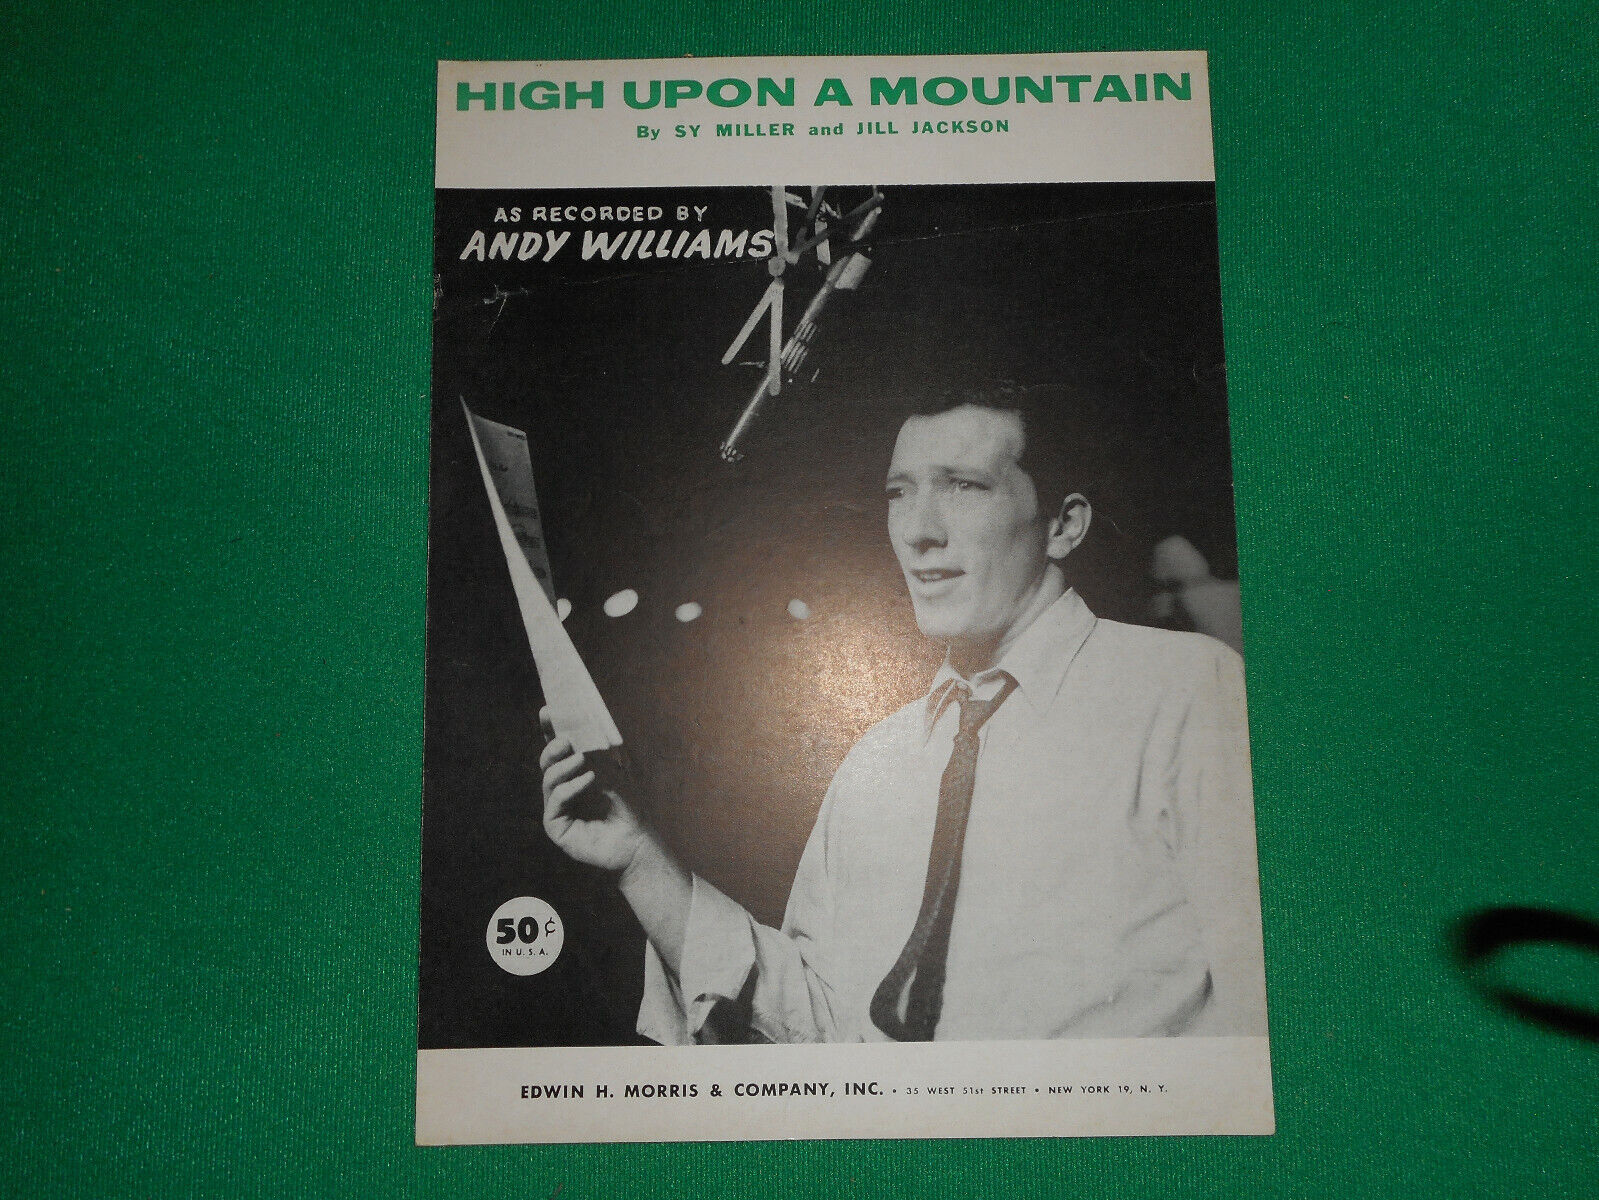 Andy Williams High Upon A Mountain 1956 Sheet Music - $2.99